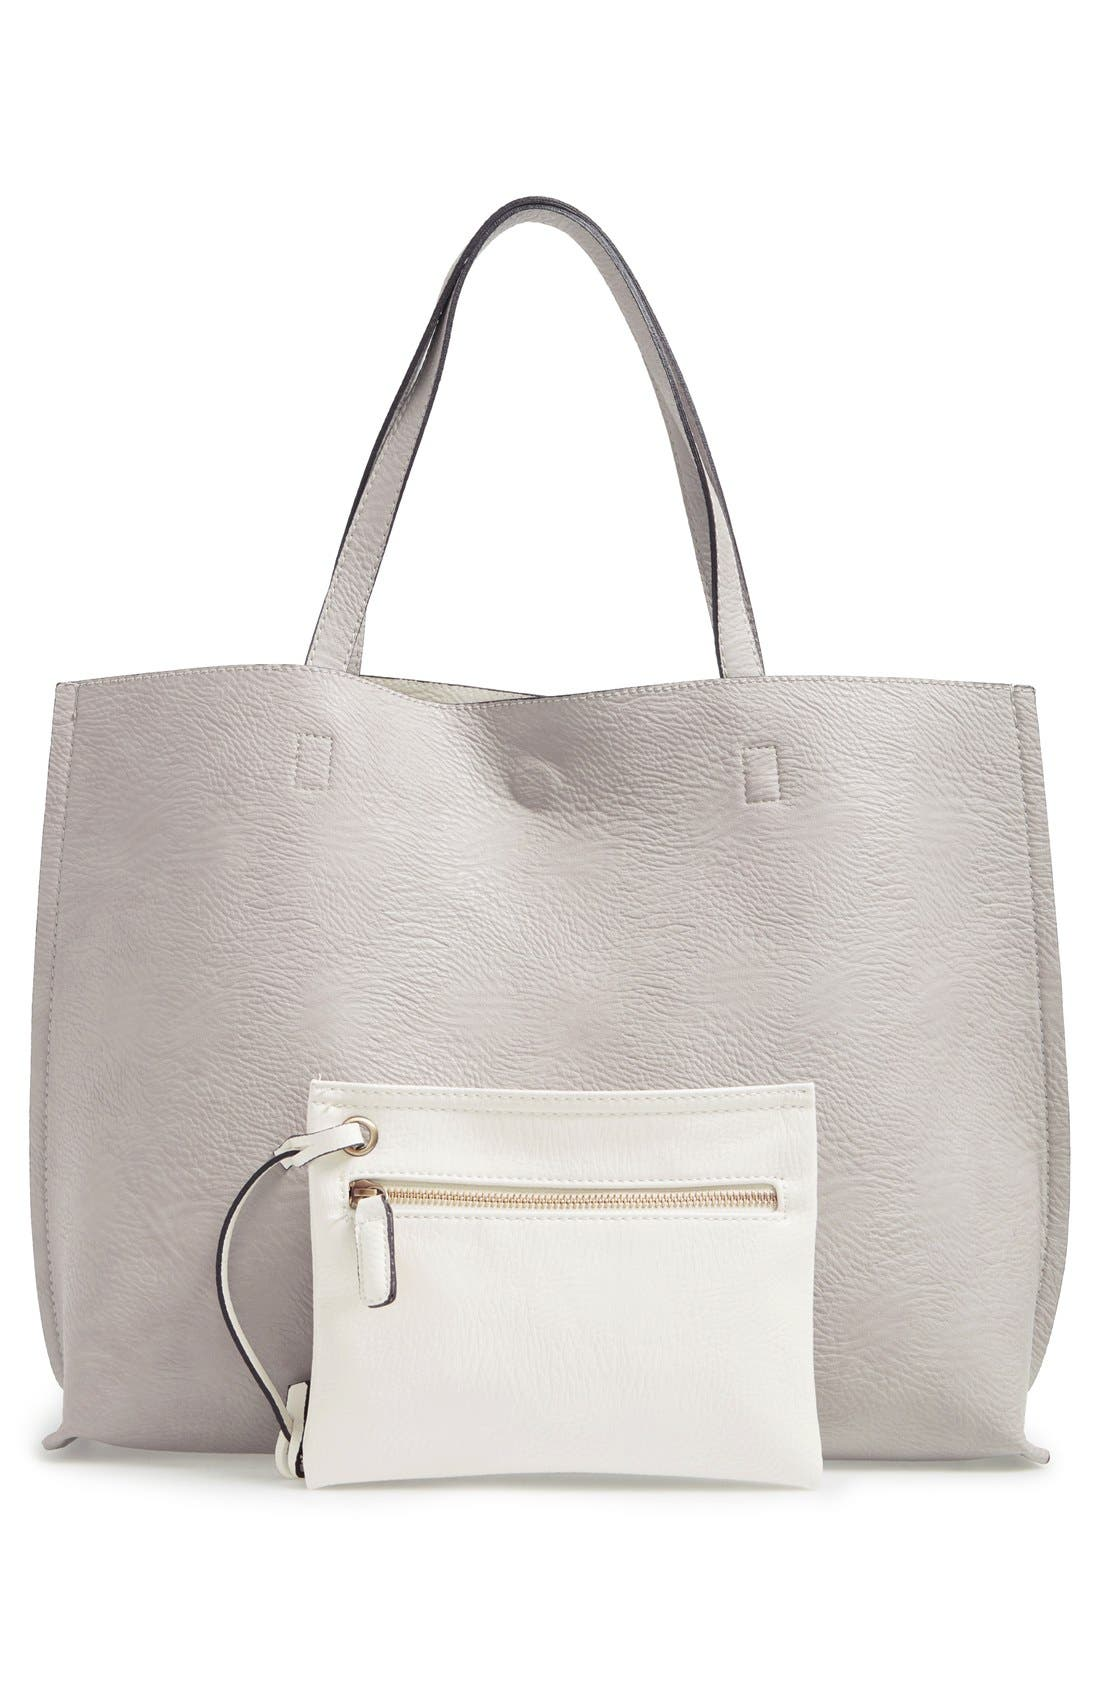 Main Image - Street Level Reversible Faux Leather Tote & Wristlet